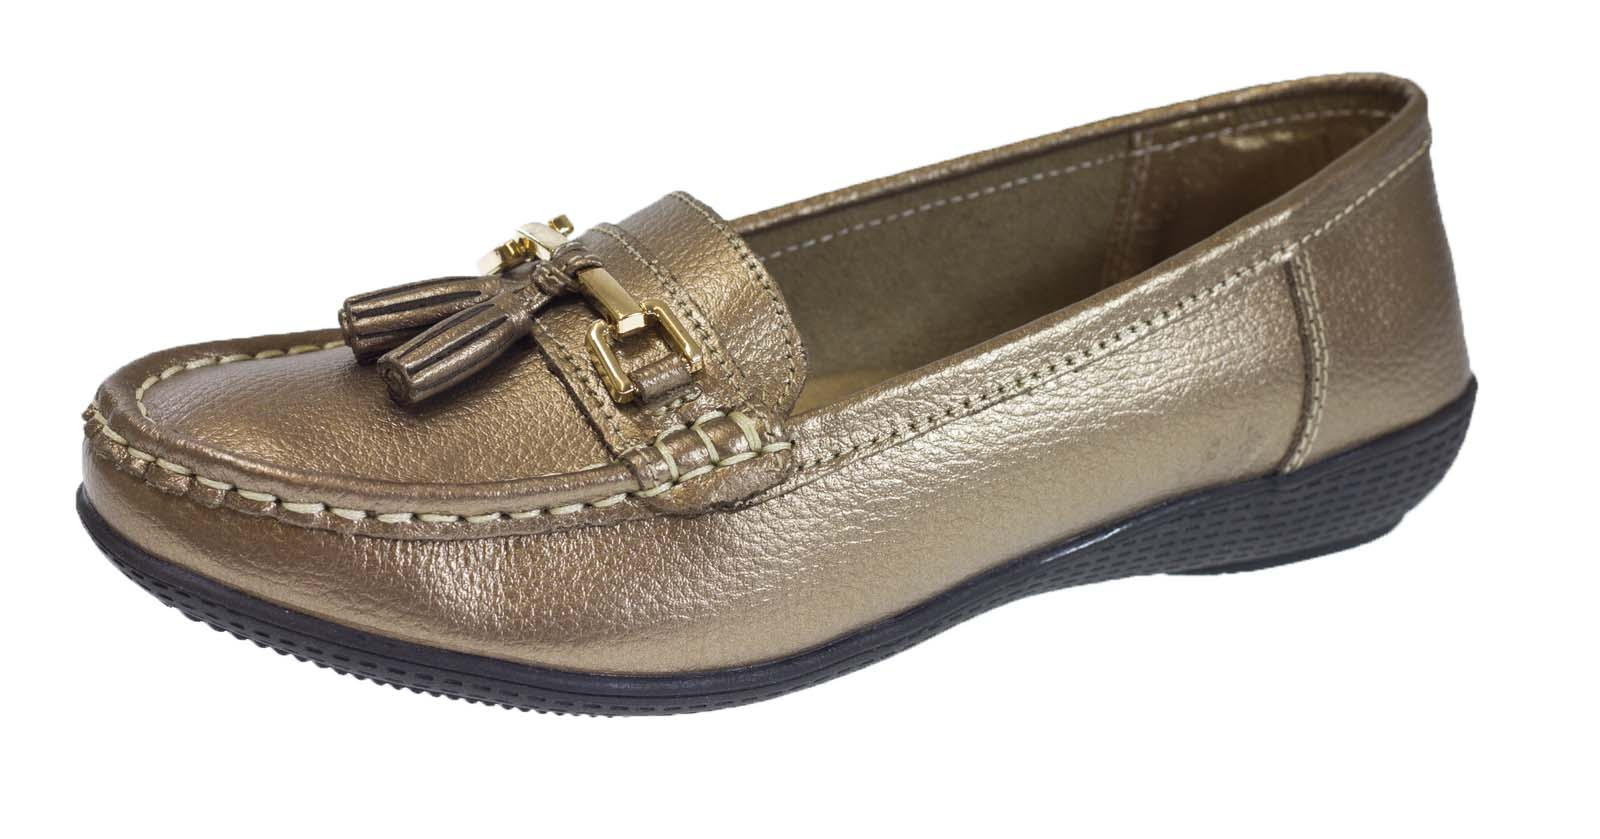 Shop women's slippers & women's moccasins at Cabela's. You will find a variety of women's moccasins including women's moccasin slippers, women's winter slippers & women's house slippers from brands like Cabela's, UGG, Minnetonka & more.